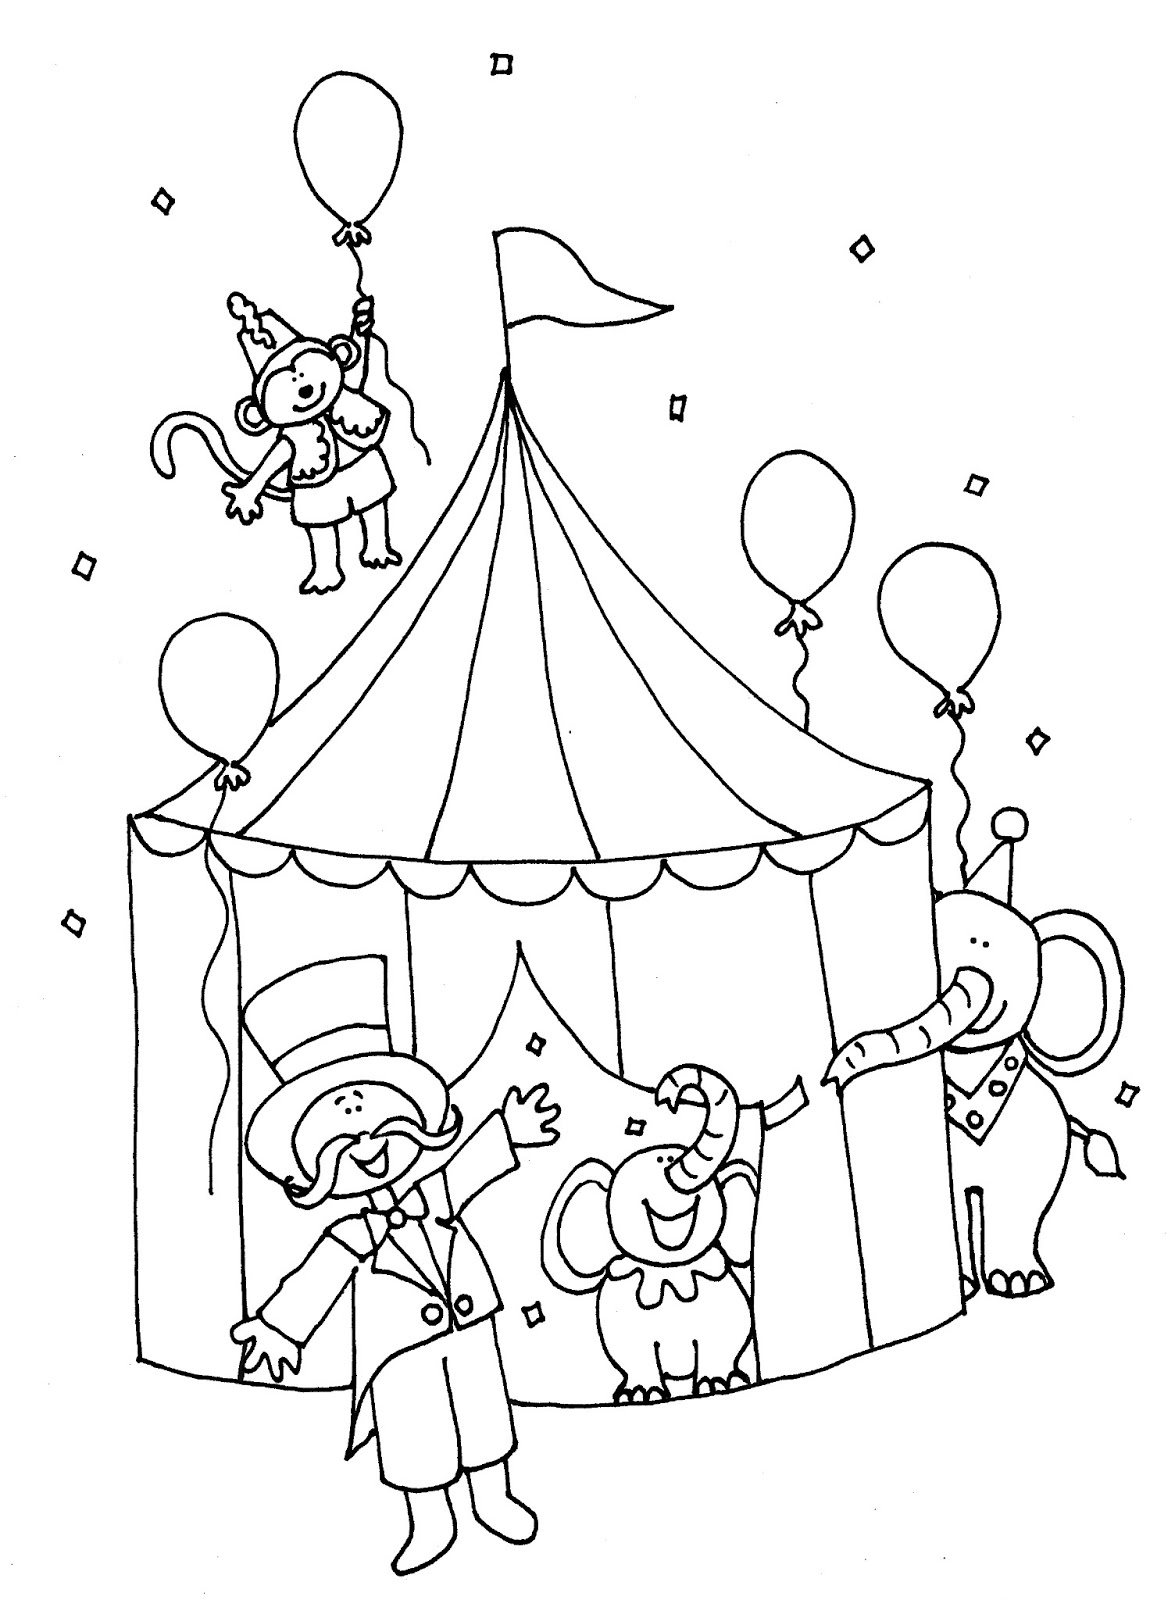 circus coloring pages - printable circus coloring pages